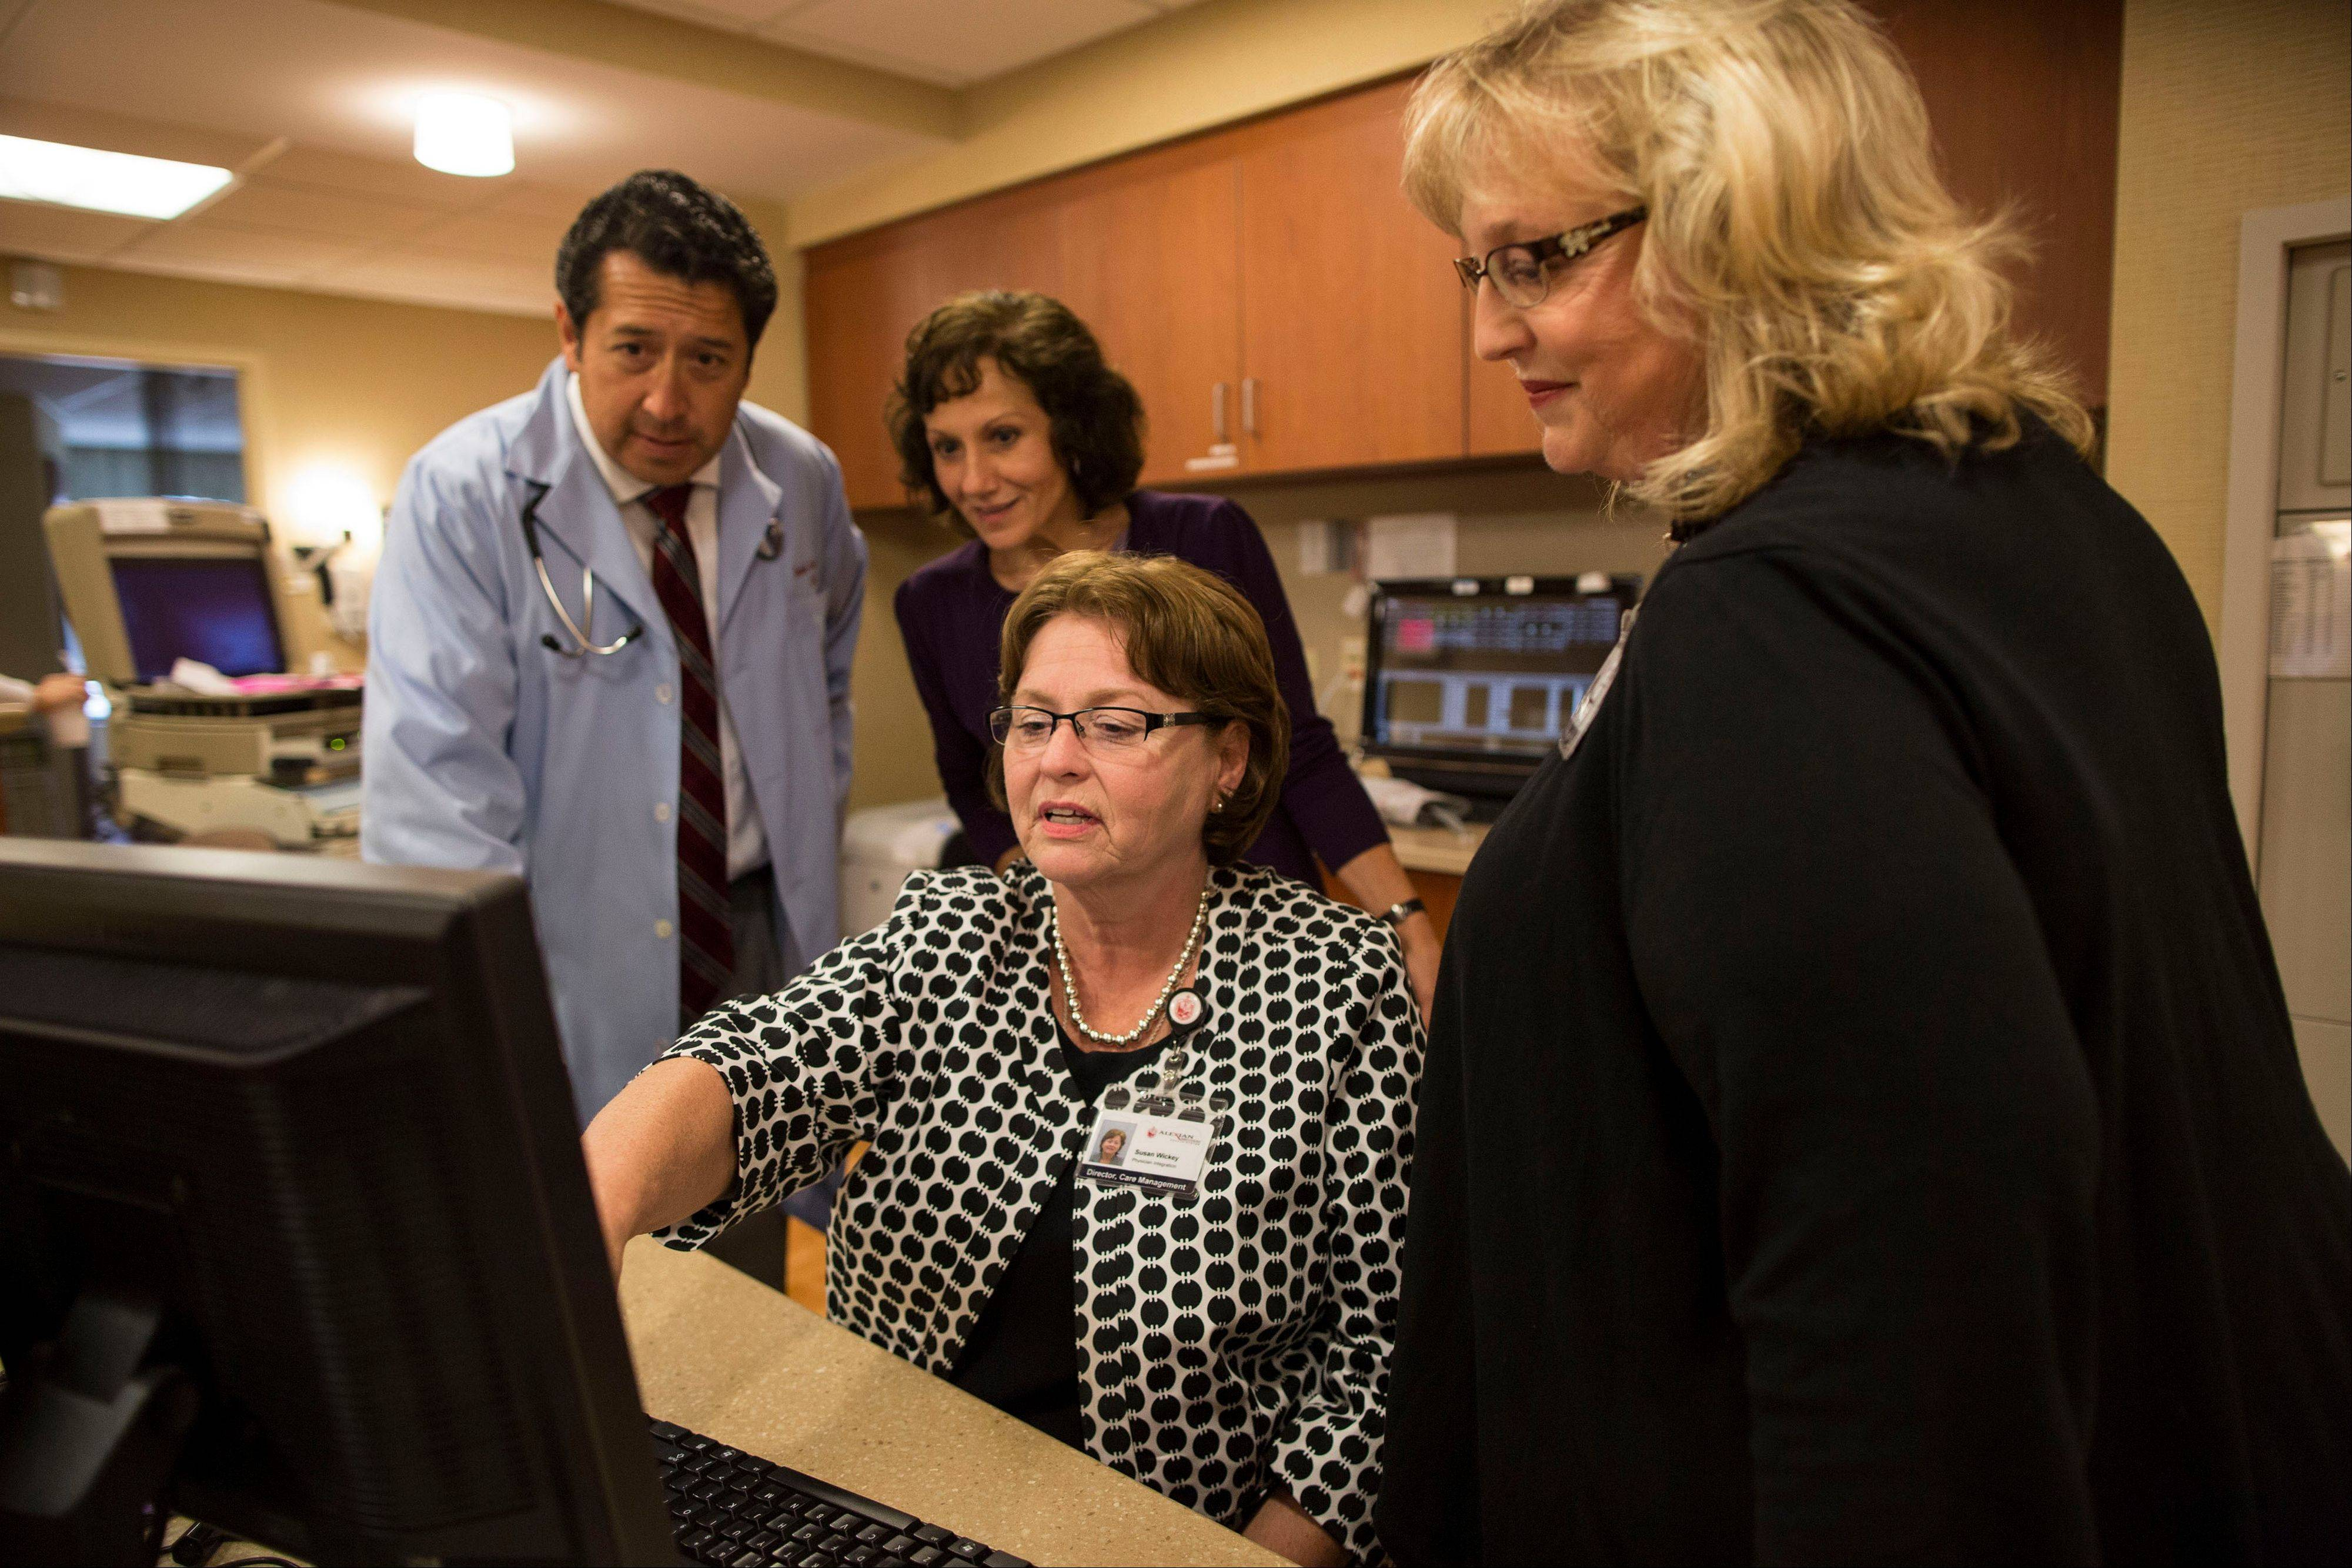 Dr. Reinhold Illerna, from left, Administrative Director of Case Management at Alexian Brothers Healthcare Center, Mary Schumann, Director of Care Management at Alexian Brothers Healthcare Center, Sue Wickey and Manager of Social Work at Alexian Brothers Healthcare Center, Jolene Grabowski work on a computer at the nurses station at the Alexian Brothers Healthcare Center in Elk Grove Village.